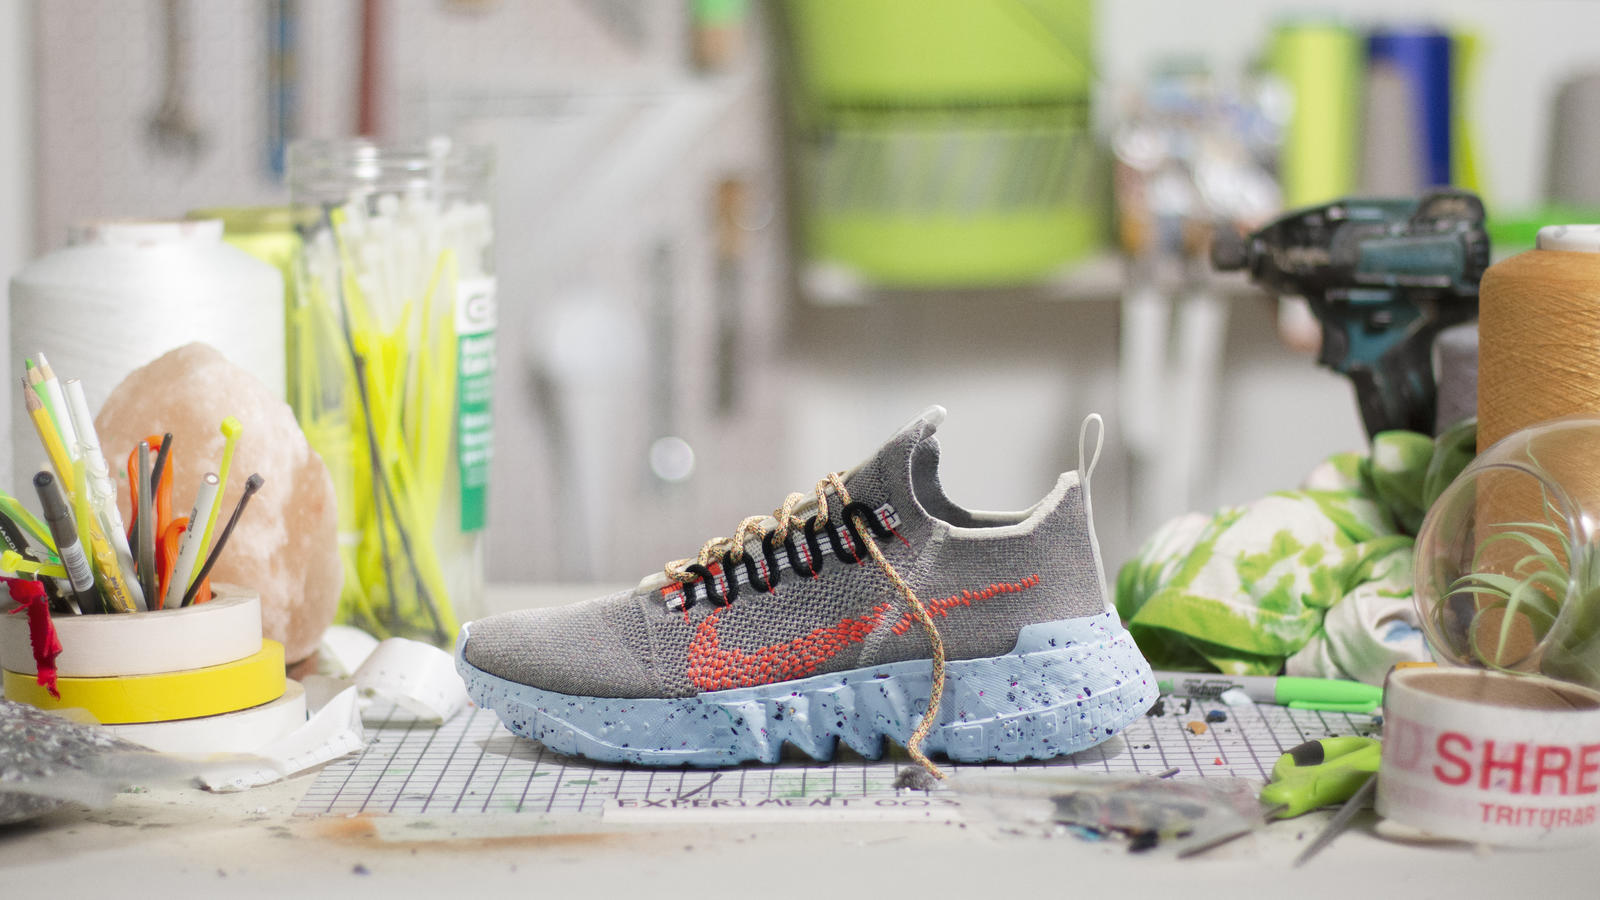 nike-space-hippie-01,-02,-03-and-04-official-images-and-release-date